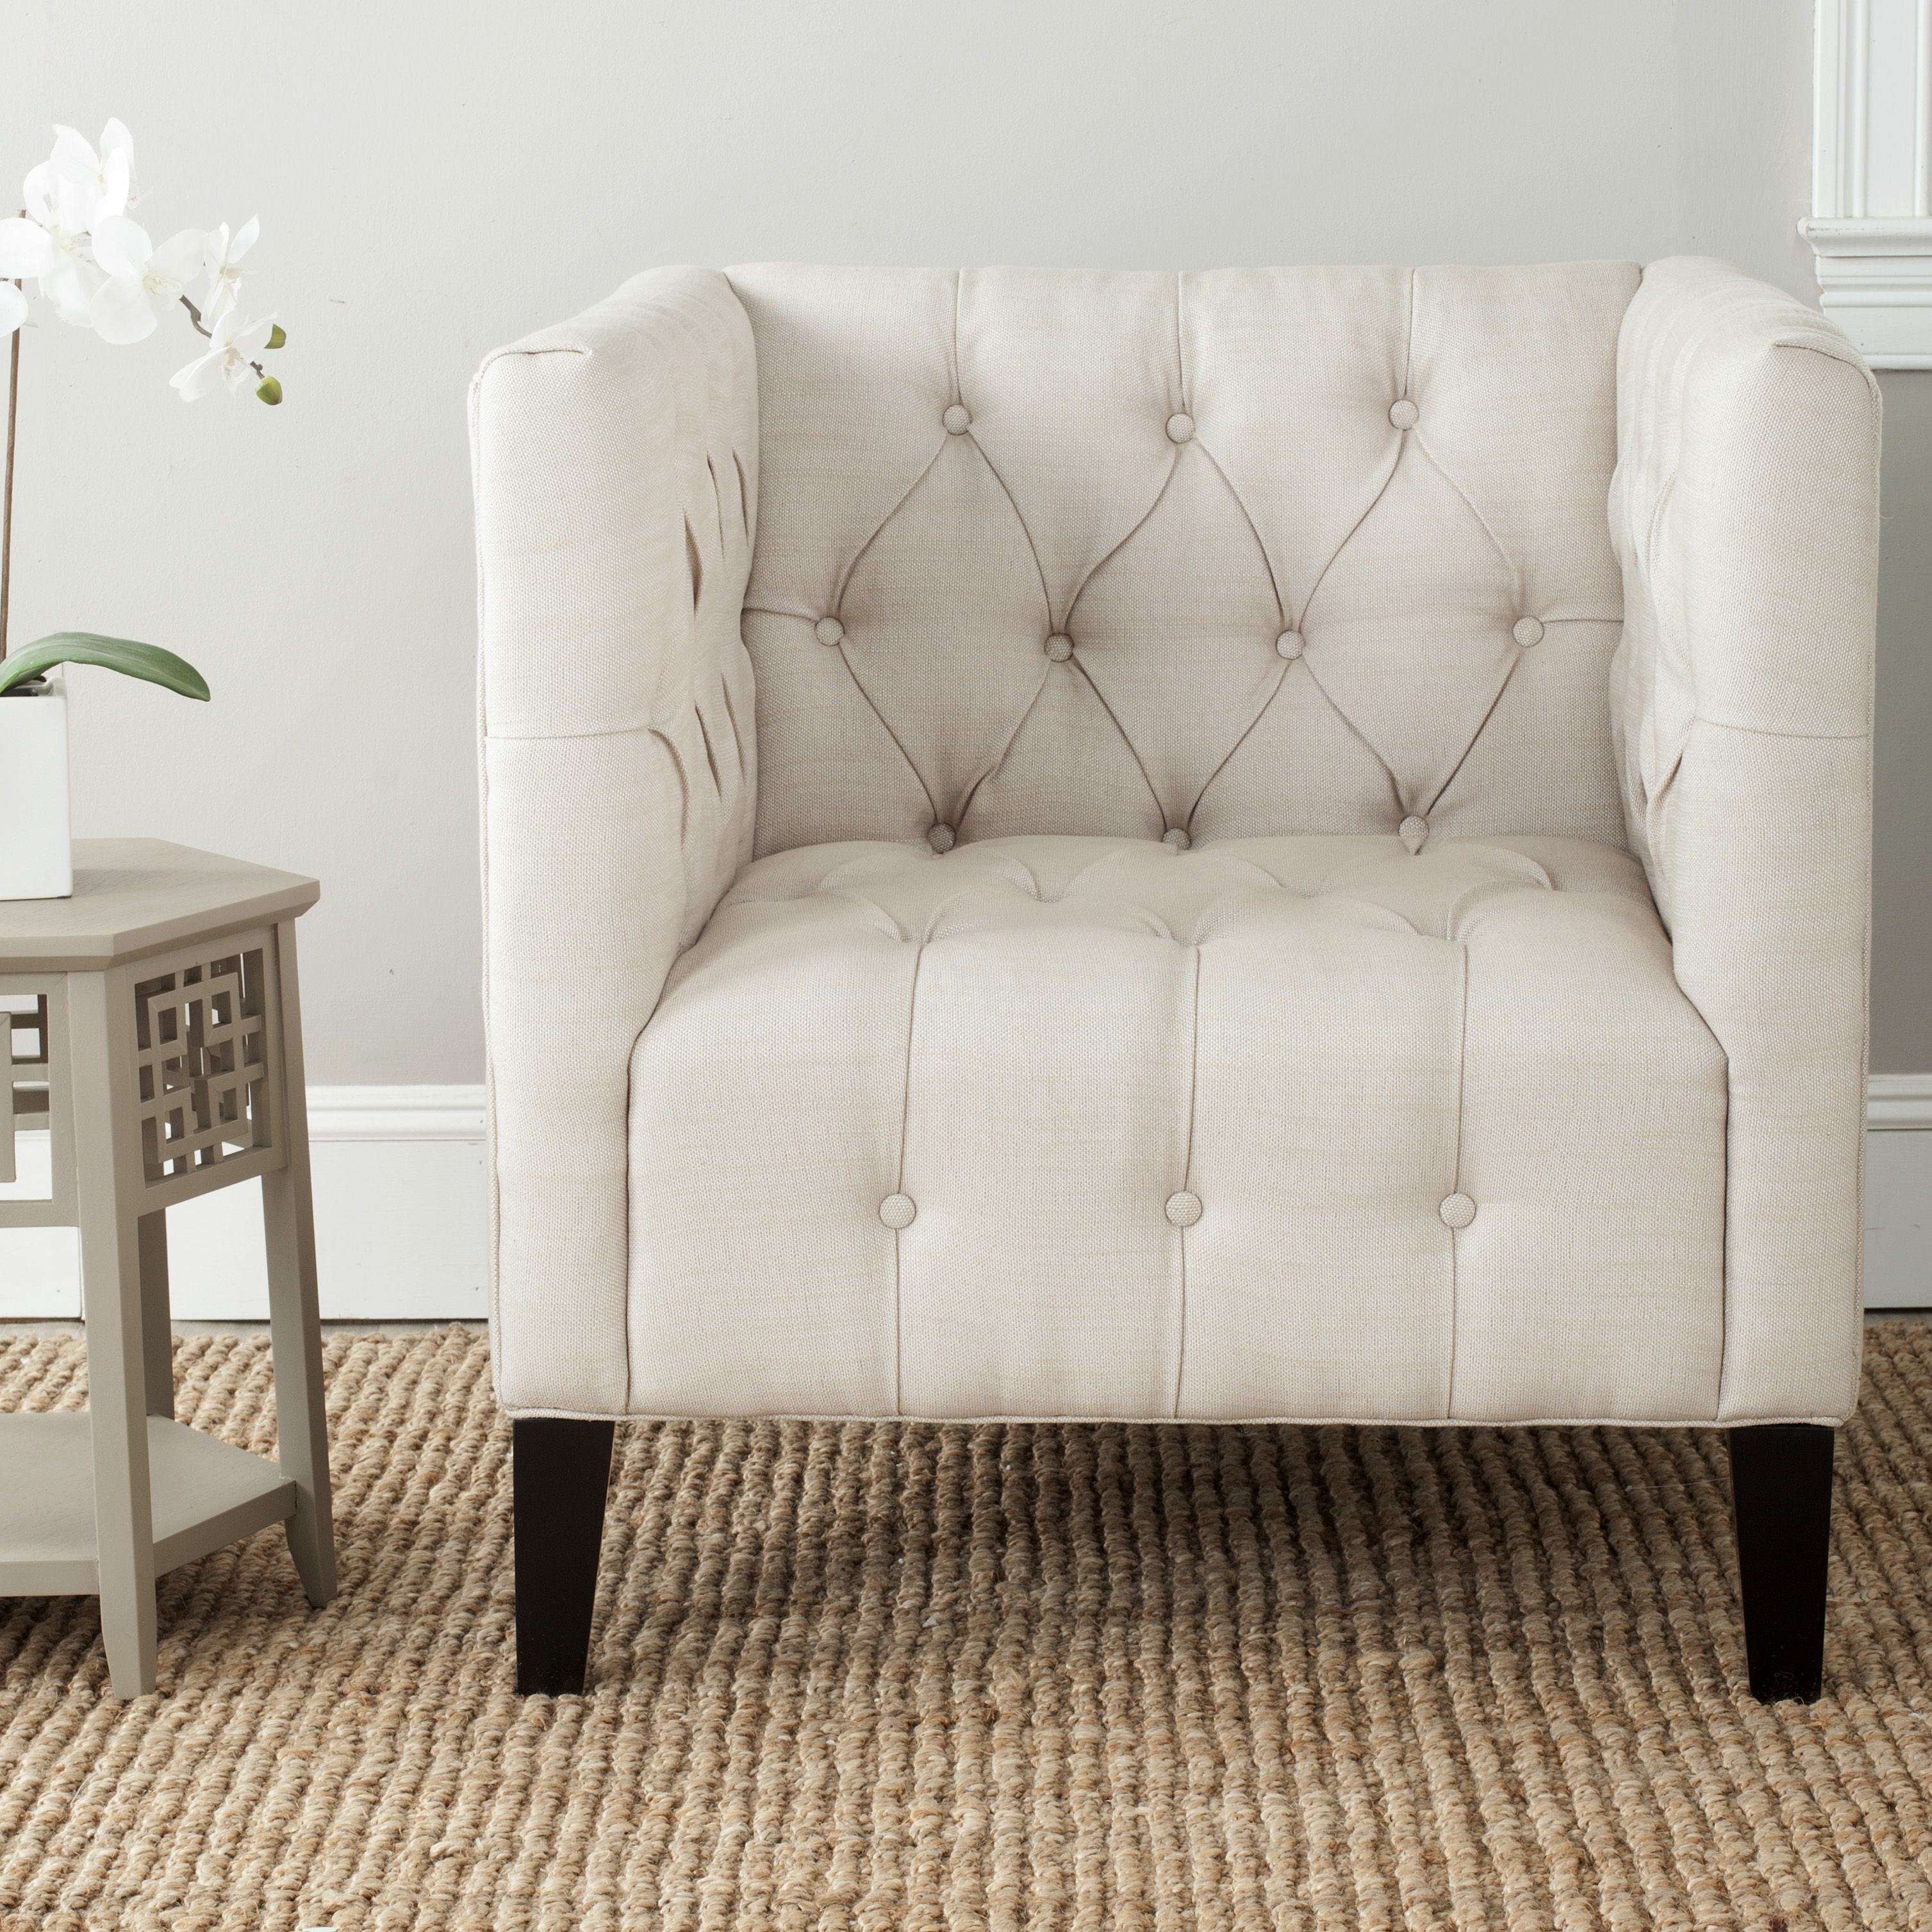 Sears Accent Chairs Sears Online Apartmentcmu Pinterest Club Chairs Chair And